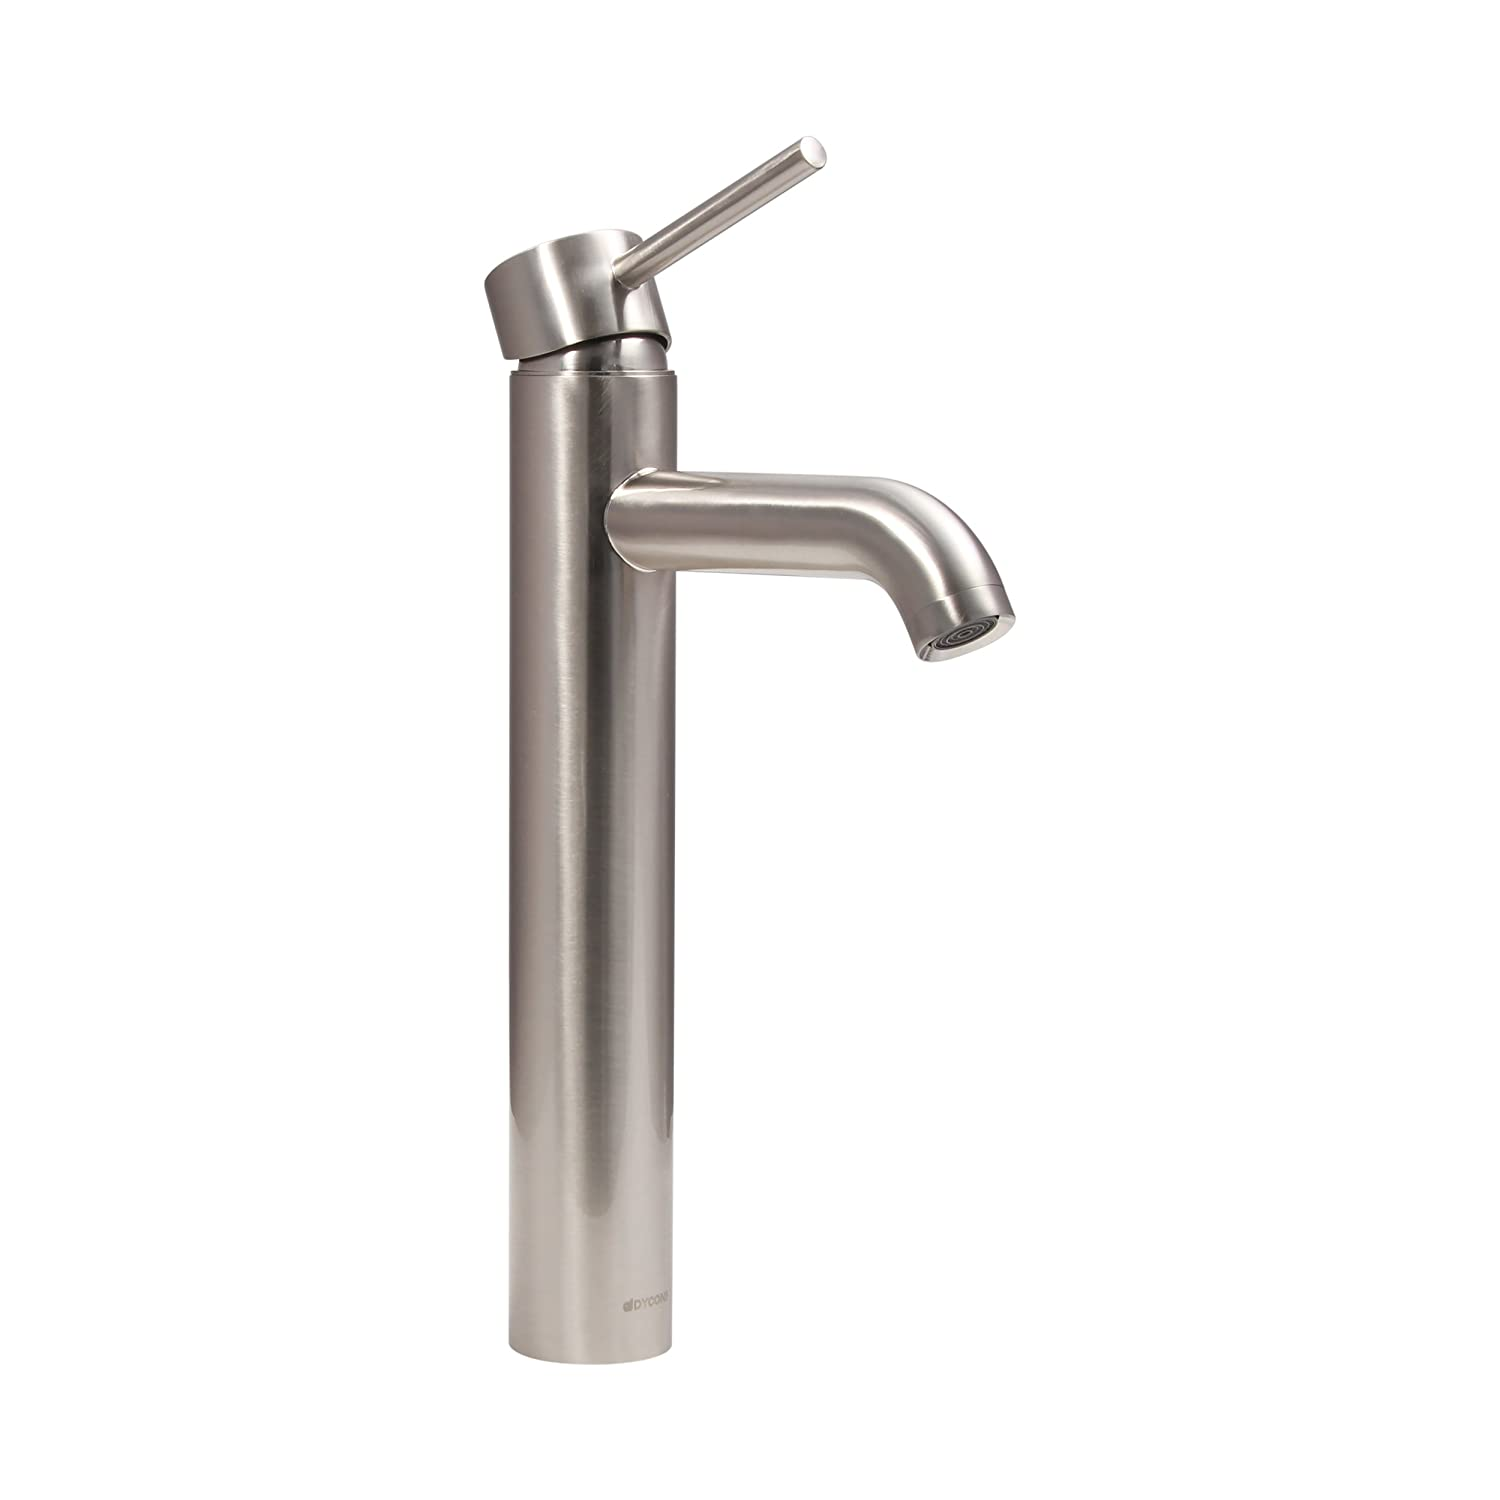 Dyconn Faucet Vs1h14 Bn Mystic Modern Bathroom Vessel Bar Faucet Brushed Nickel Ebay